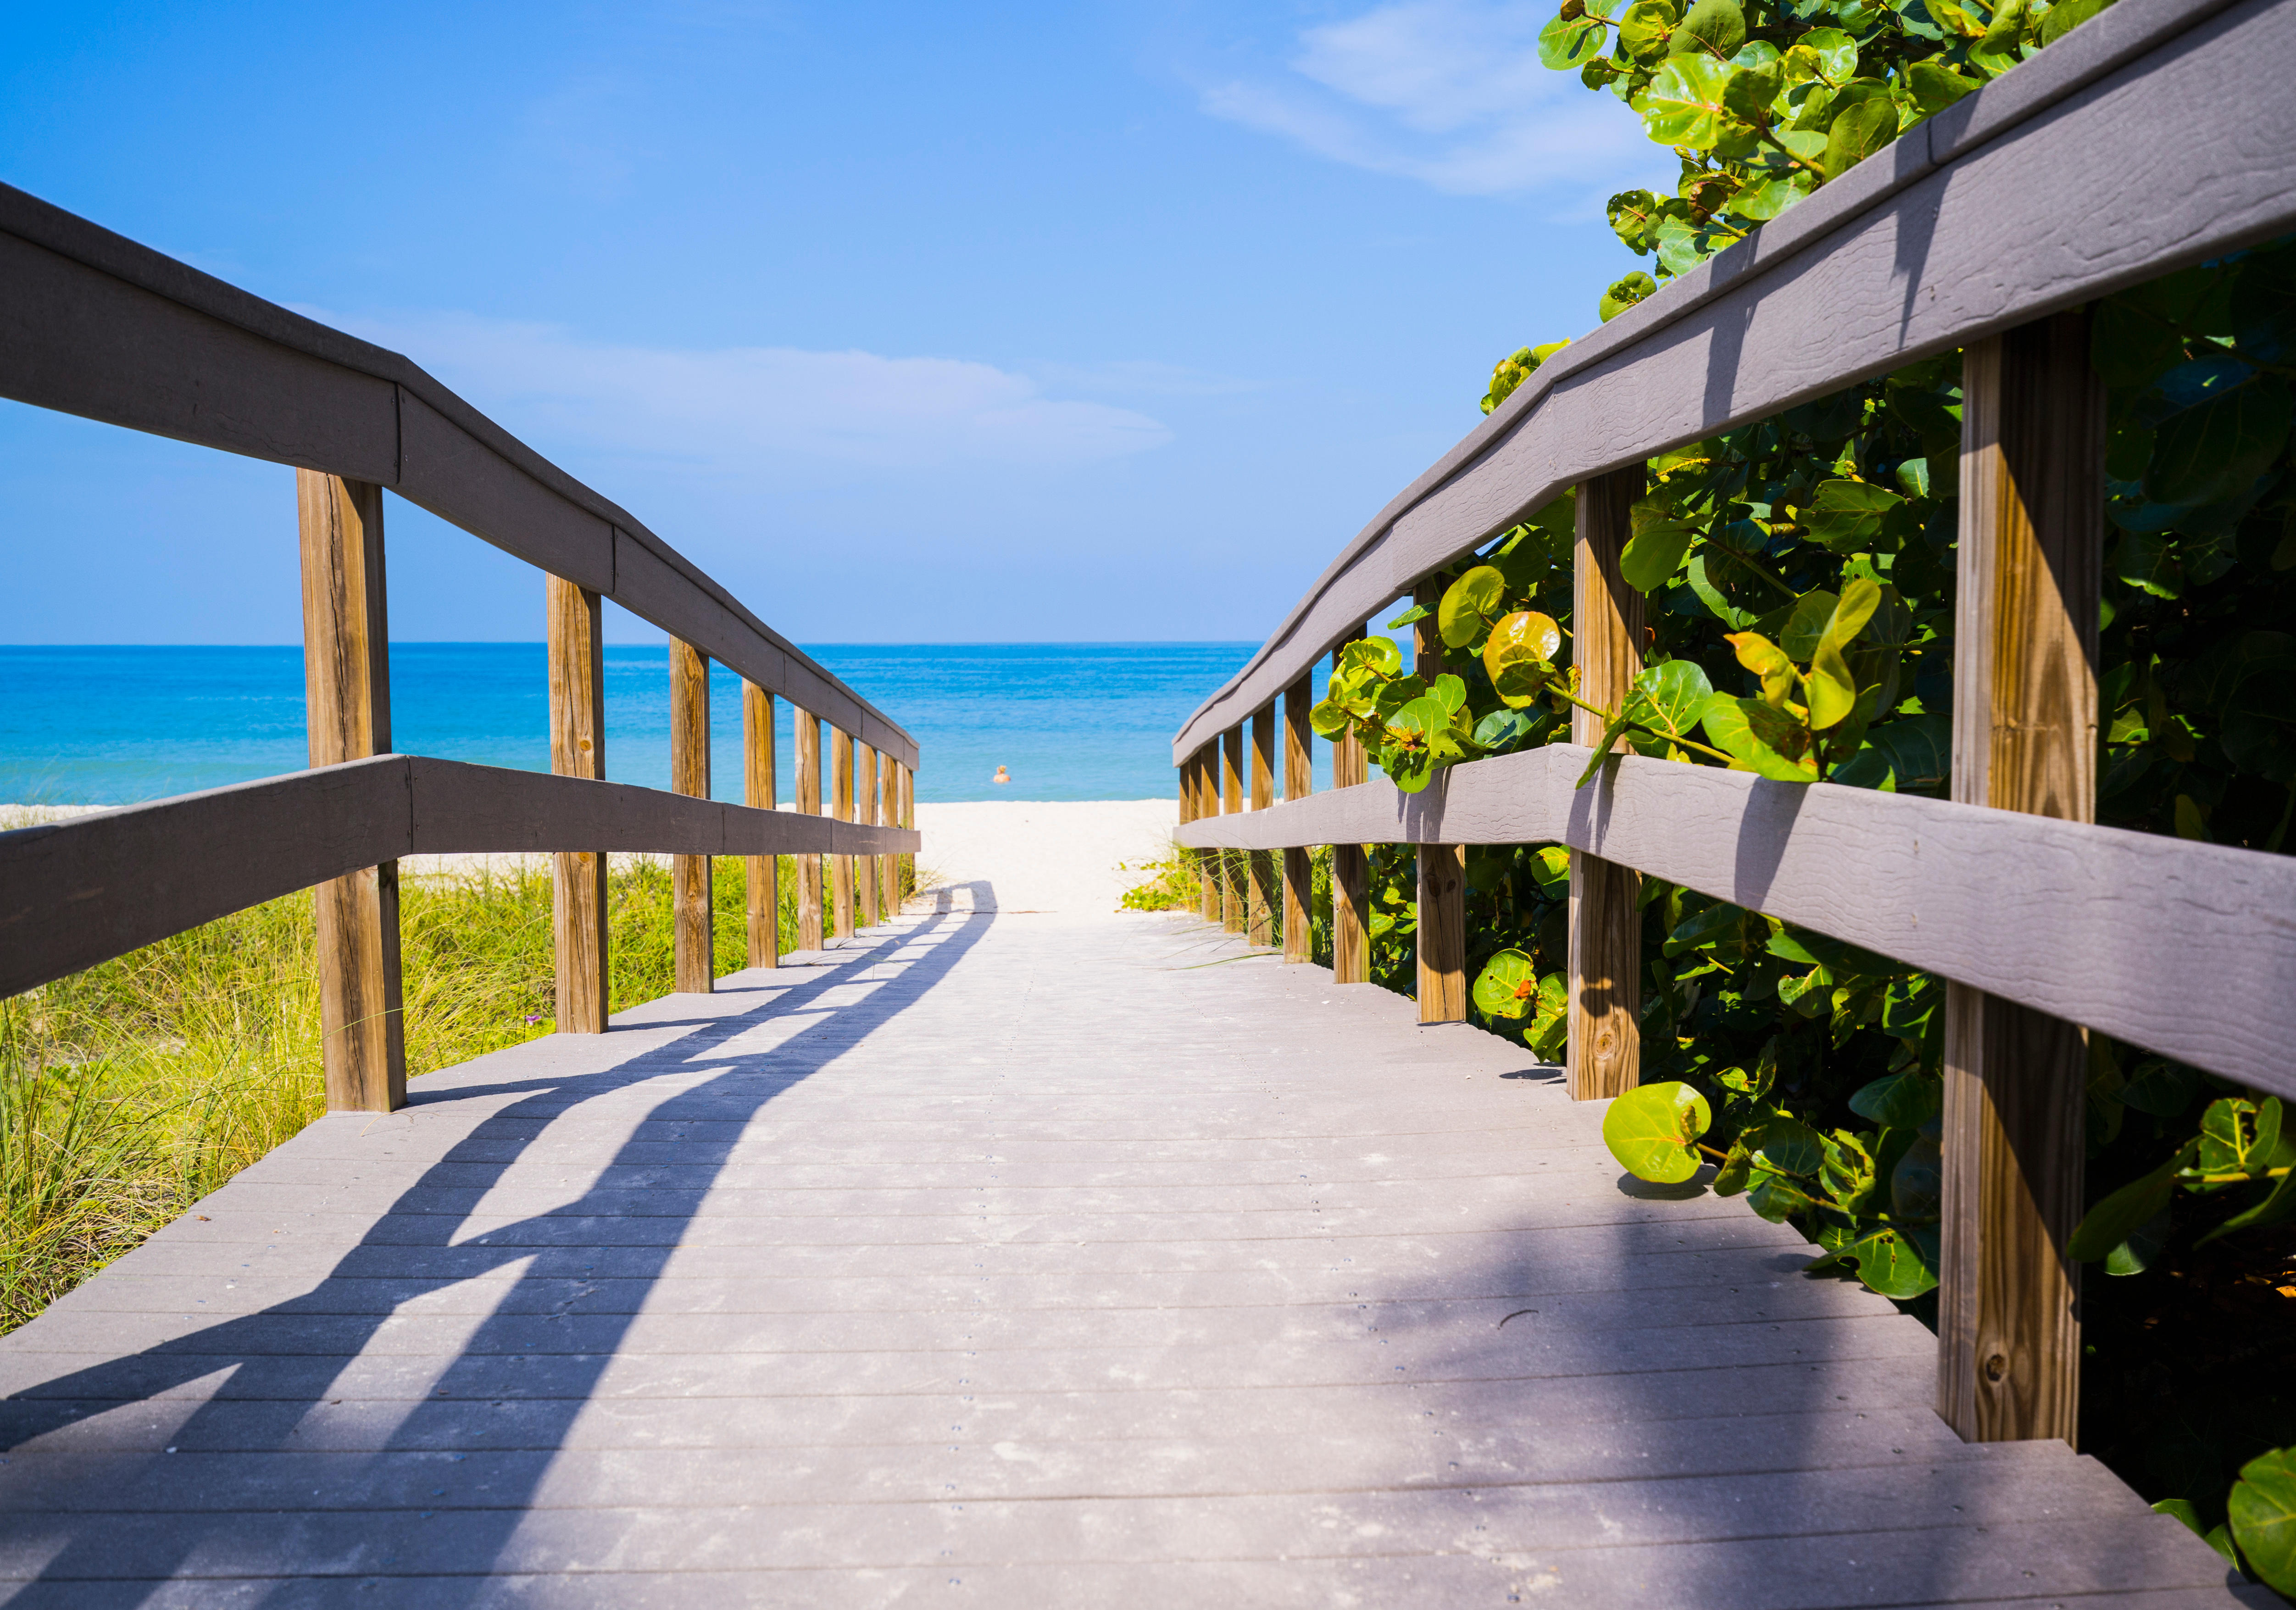 Florida, USA - Wooden boardwalk to ocean on Sunset Beach, Treasure Island, Florida on Gulf of Mexico in summer